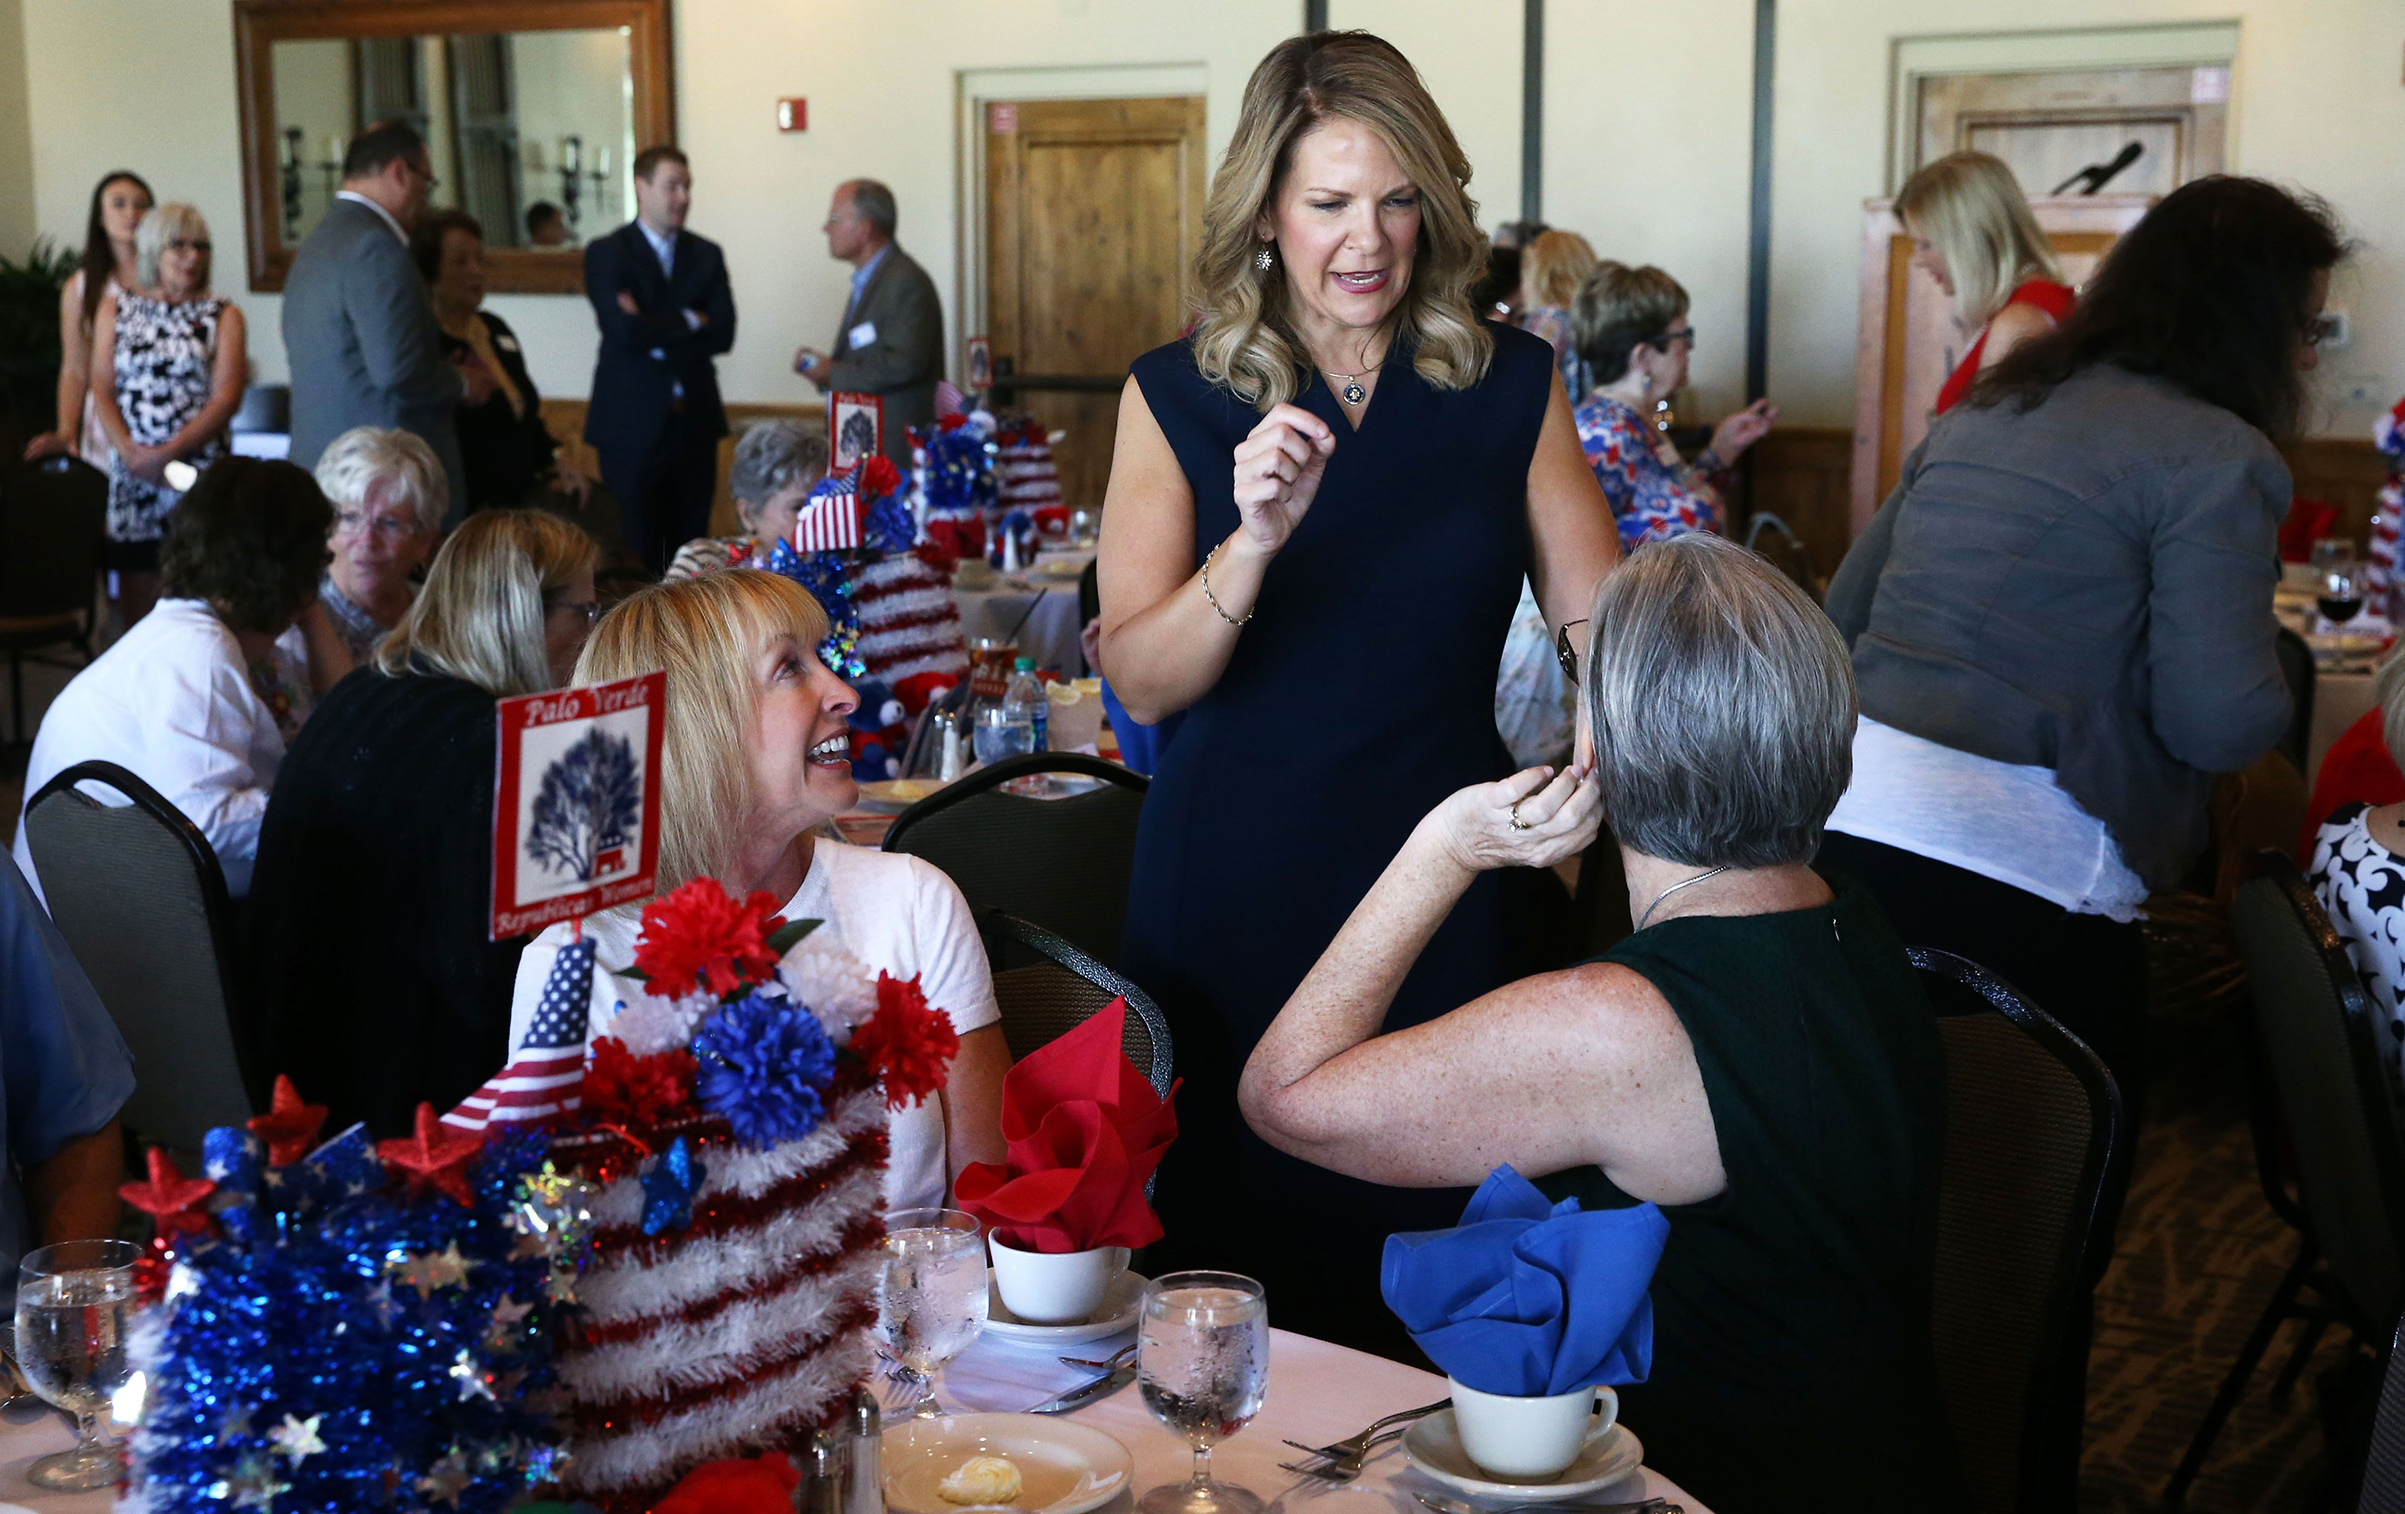 Ward chats up voters at the Palo Verde Republican Women's luncheon in Scottsdale on July 18